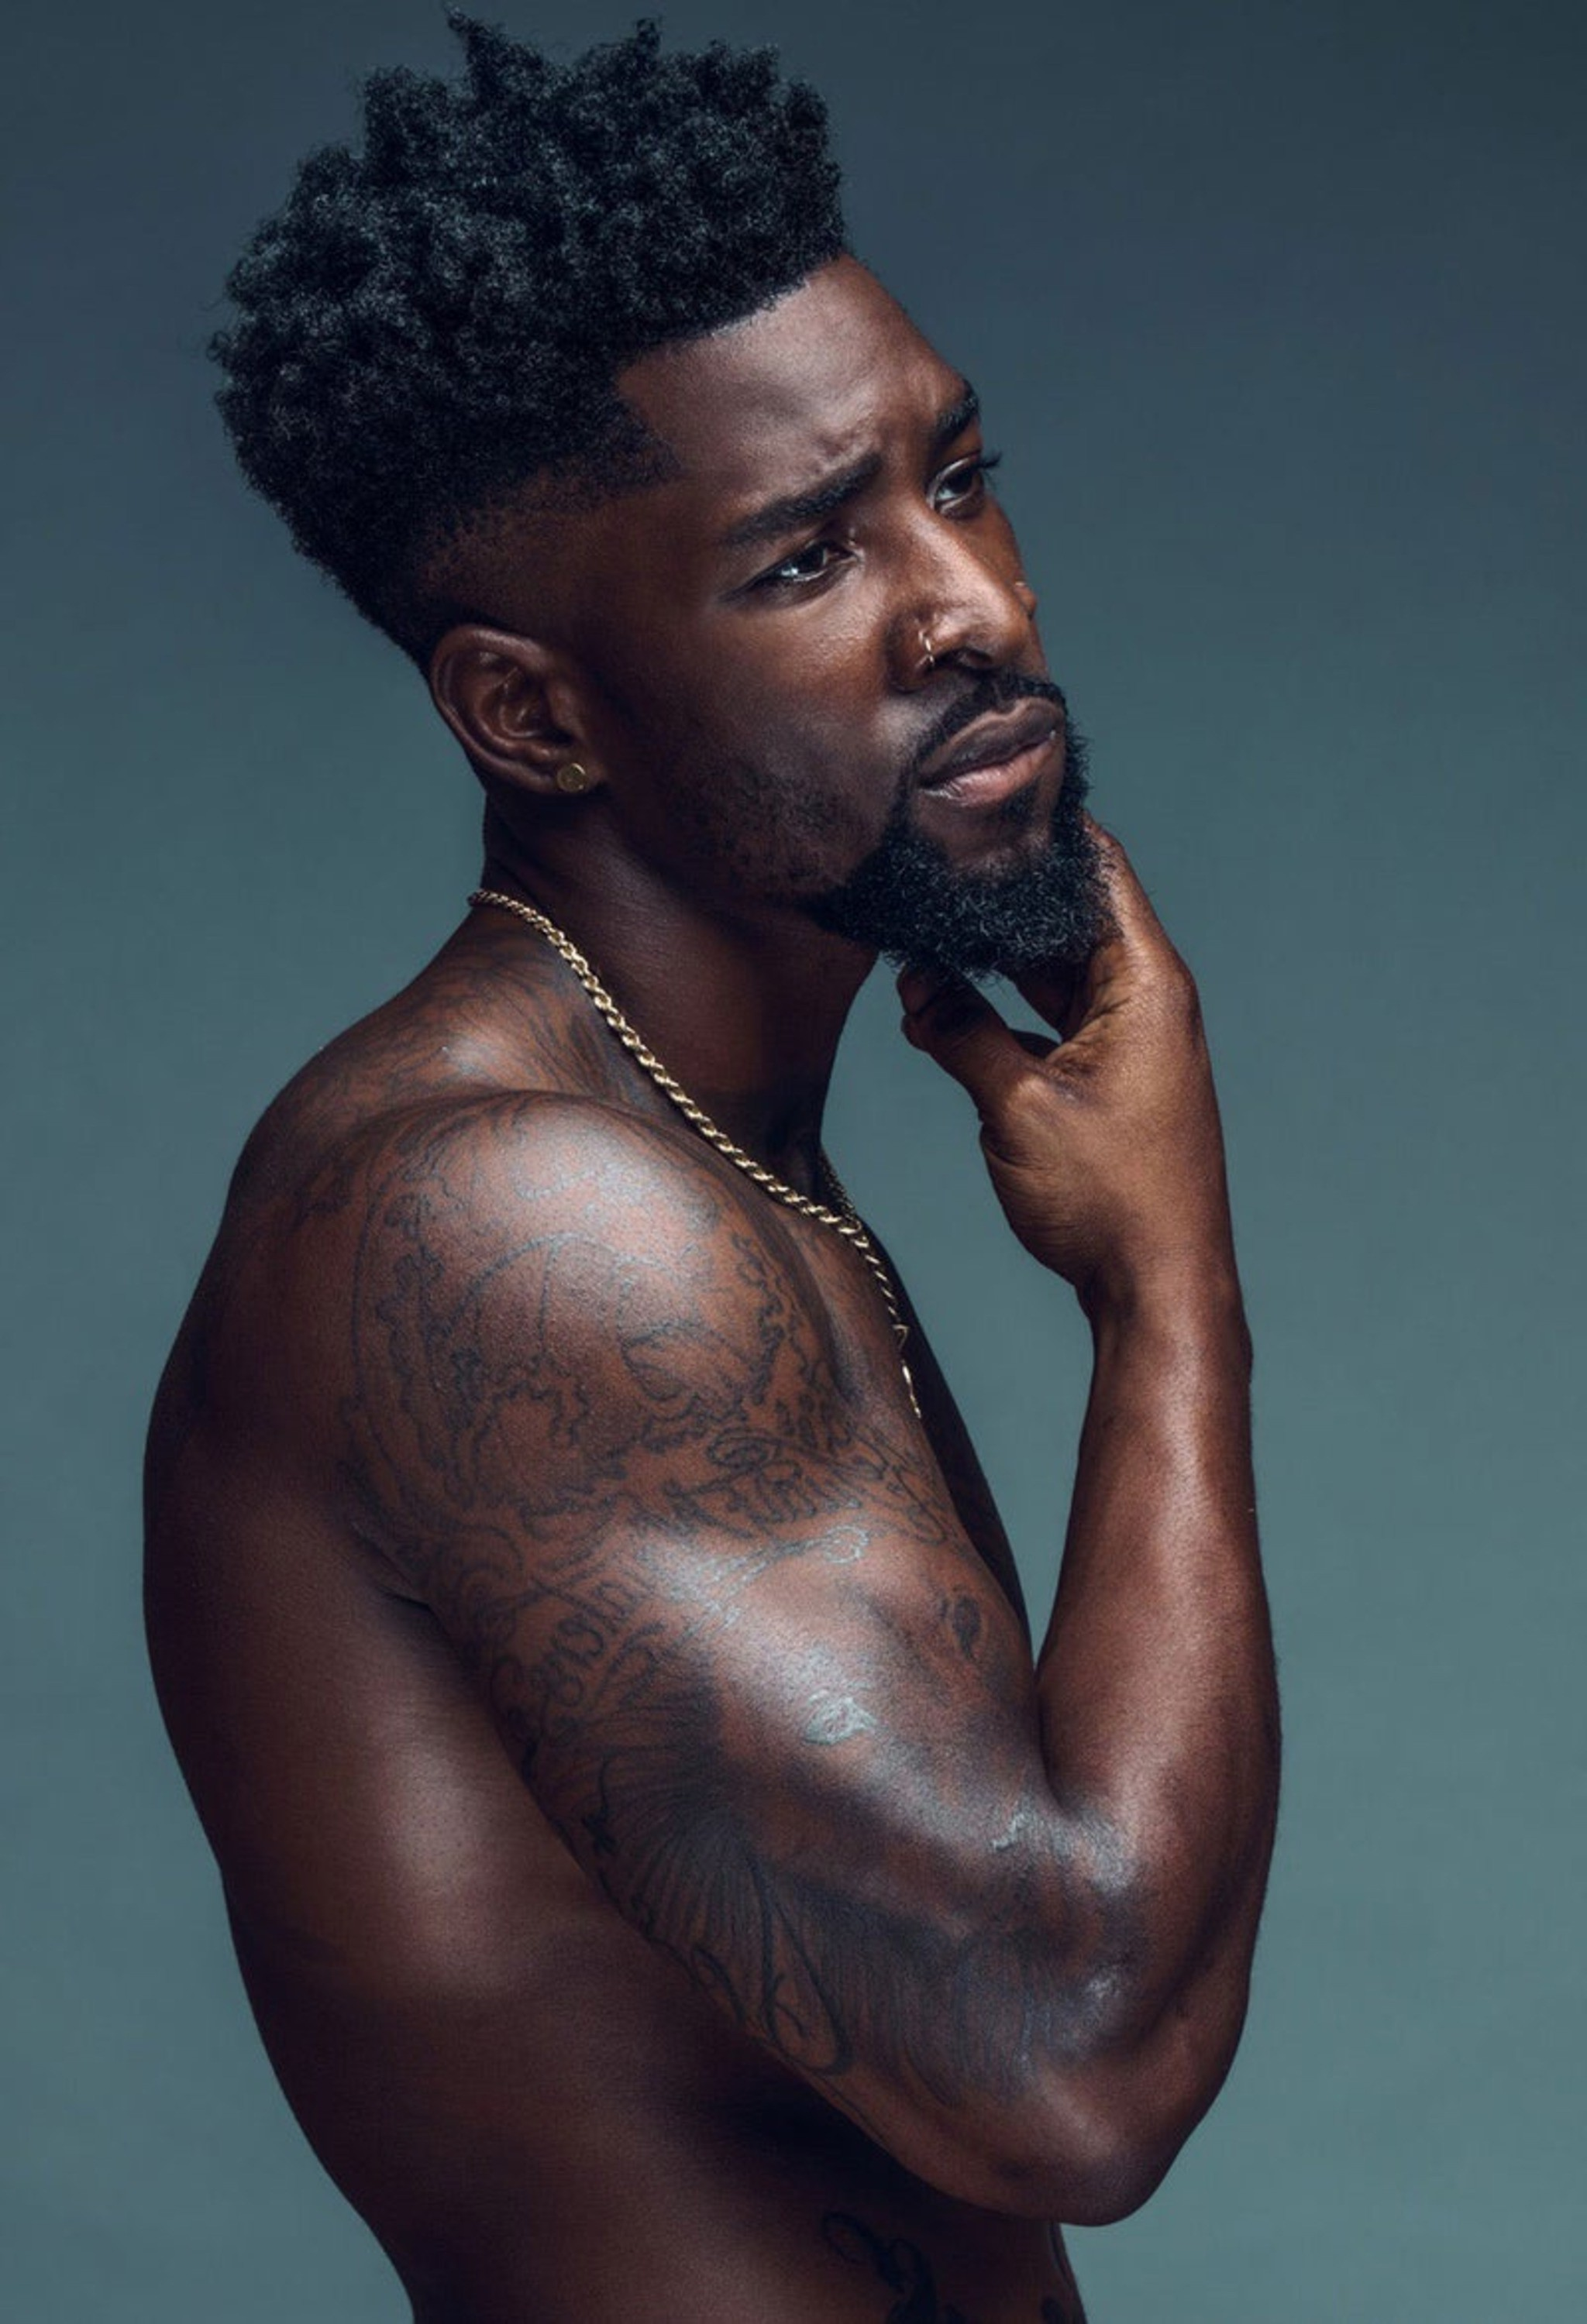 A cool black man with a beard style.